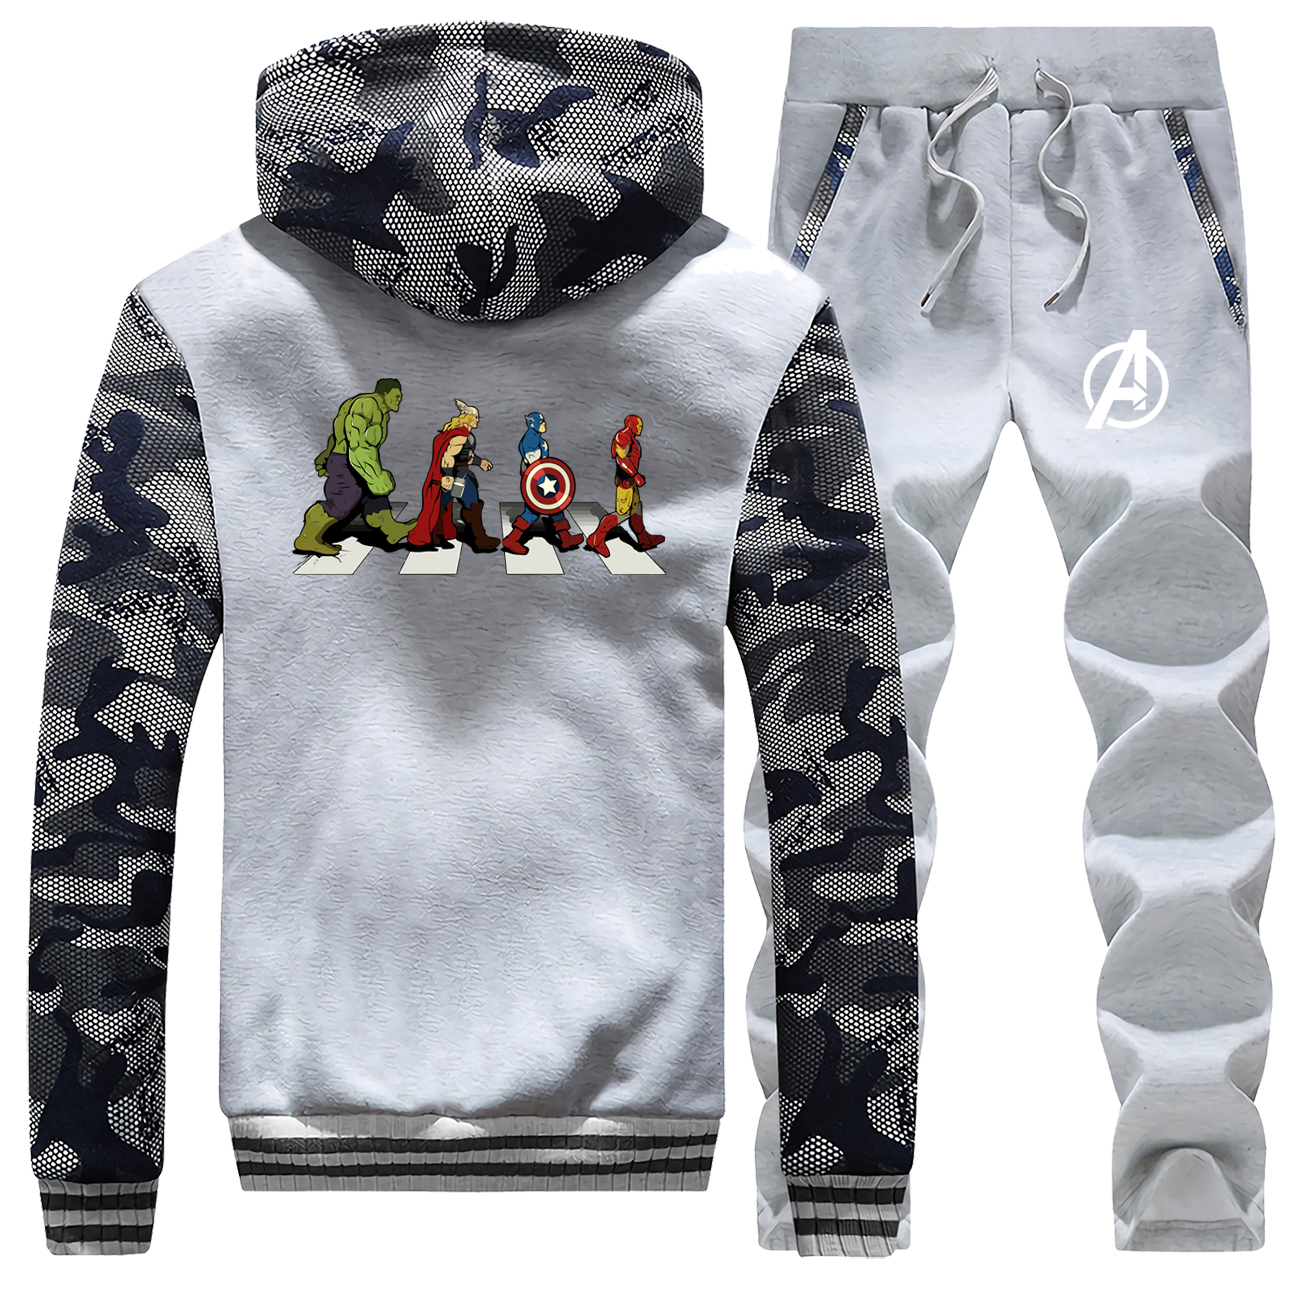 Mens Camouflage Fleece Sweatshirt Super Hero The Avengers Cartoon Coat Thick Winter Fashion Hoody Suit Jackets+Pants 2 Piece Set